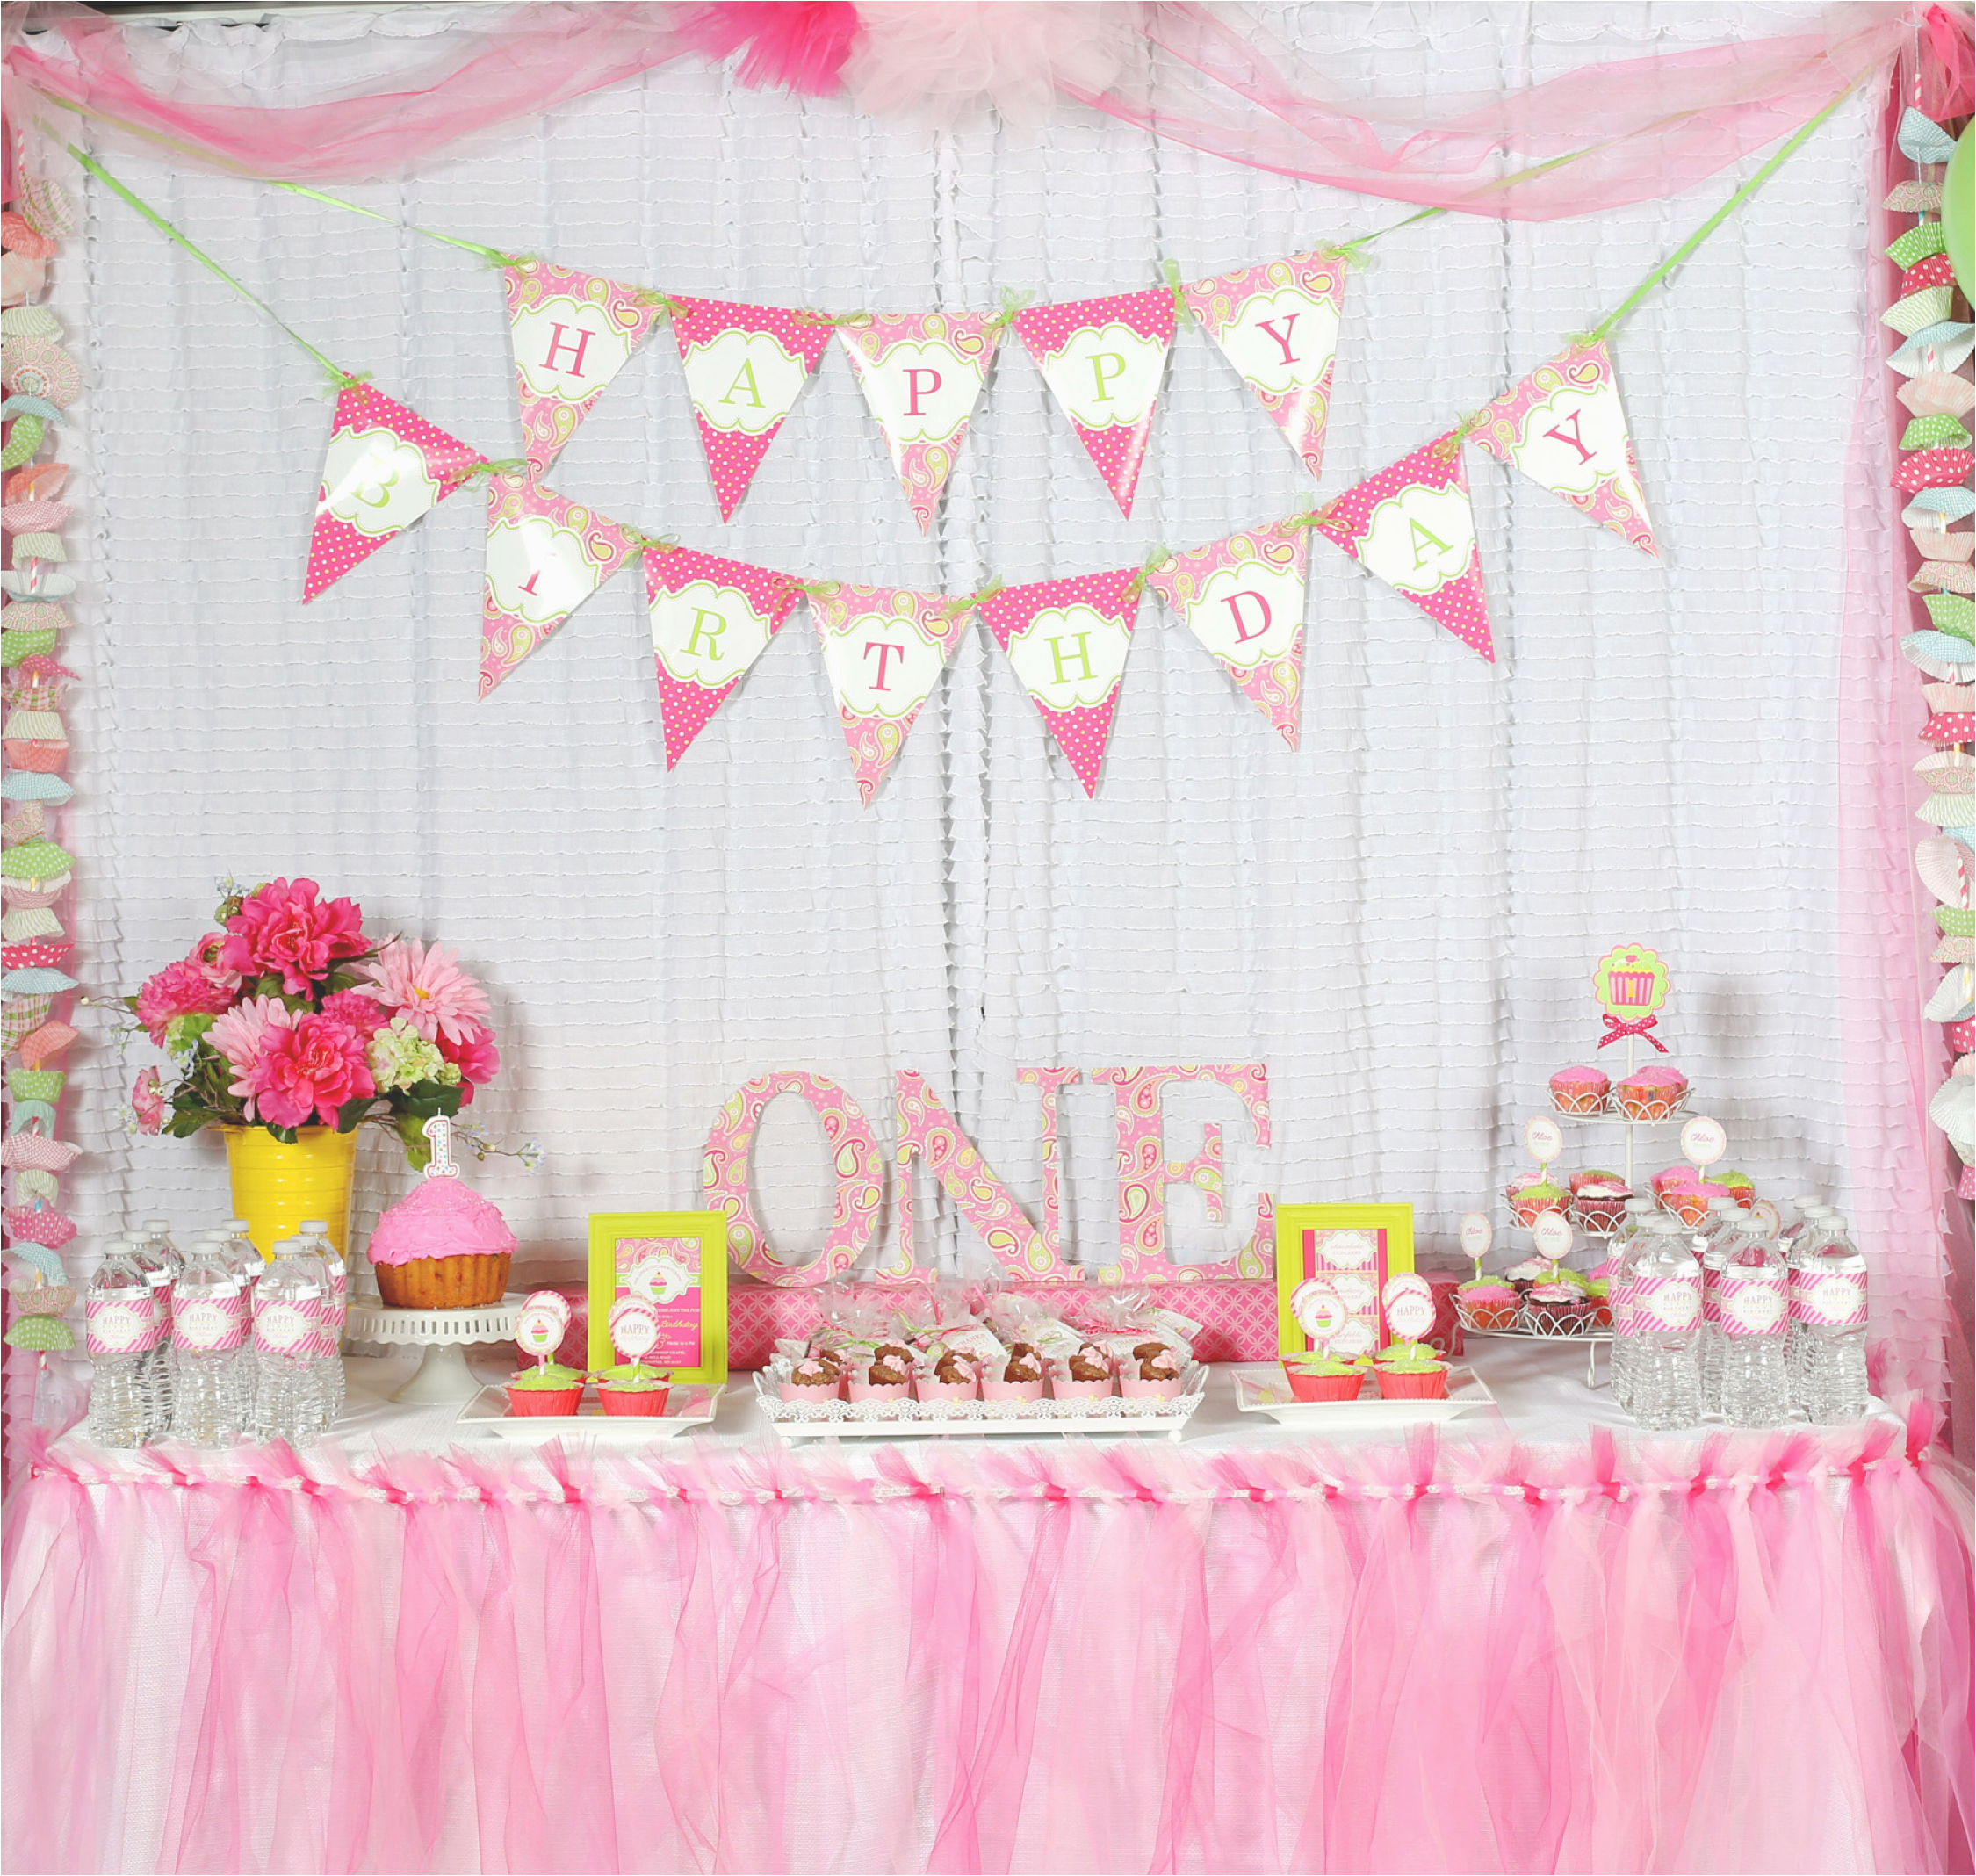 My First Birthday Decorations A Cupcake themed 1st Birthday Party with Paisley and Polka